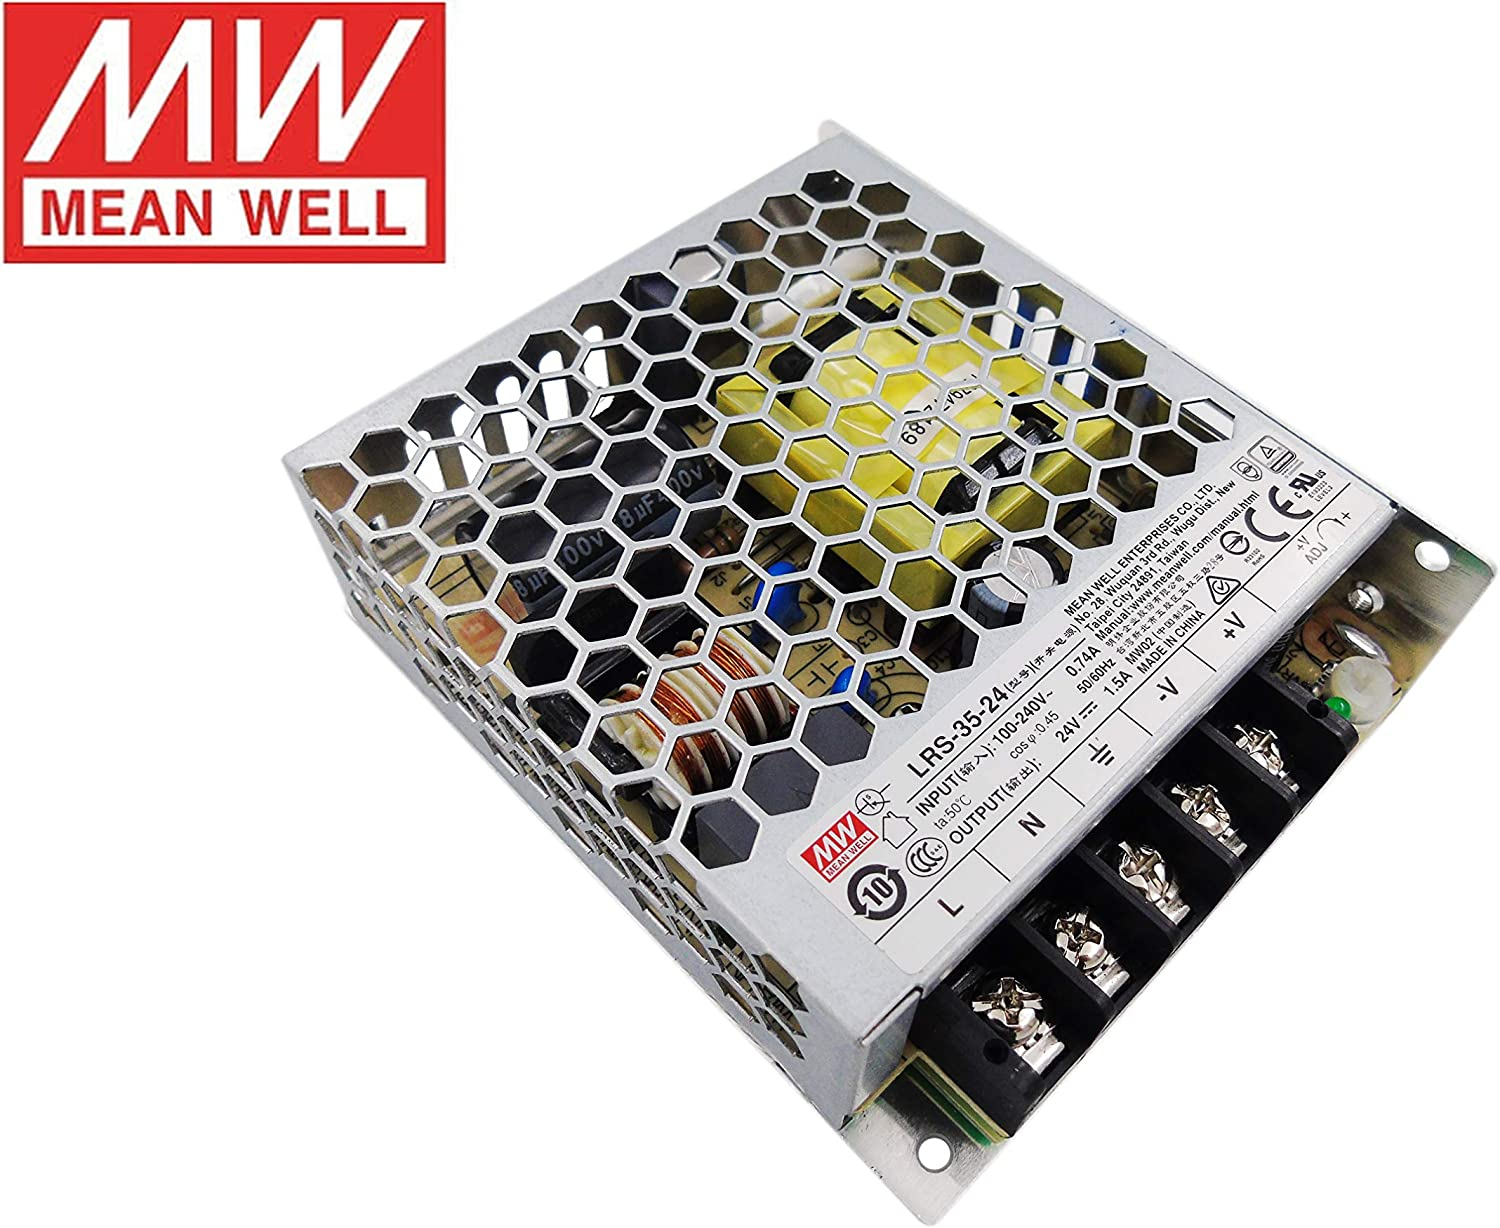 MeanWell Fuente de alimentacion 35W 24V 1.5A Enclosed LRS-35-24 Power Supply AC/DC